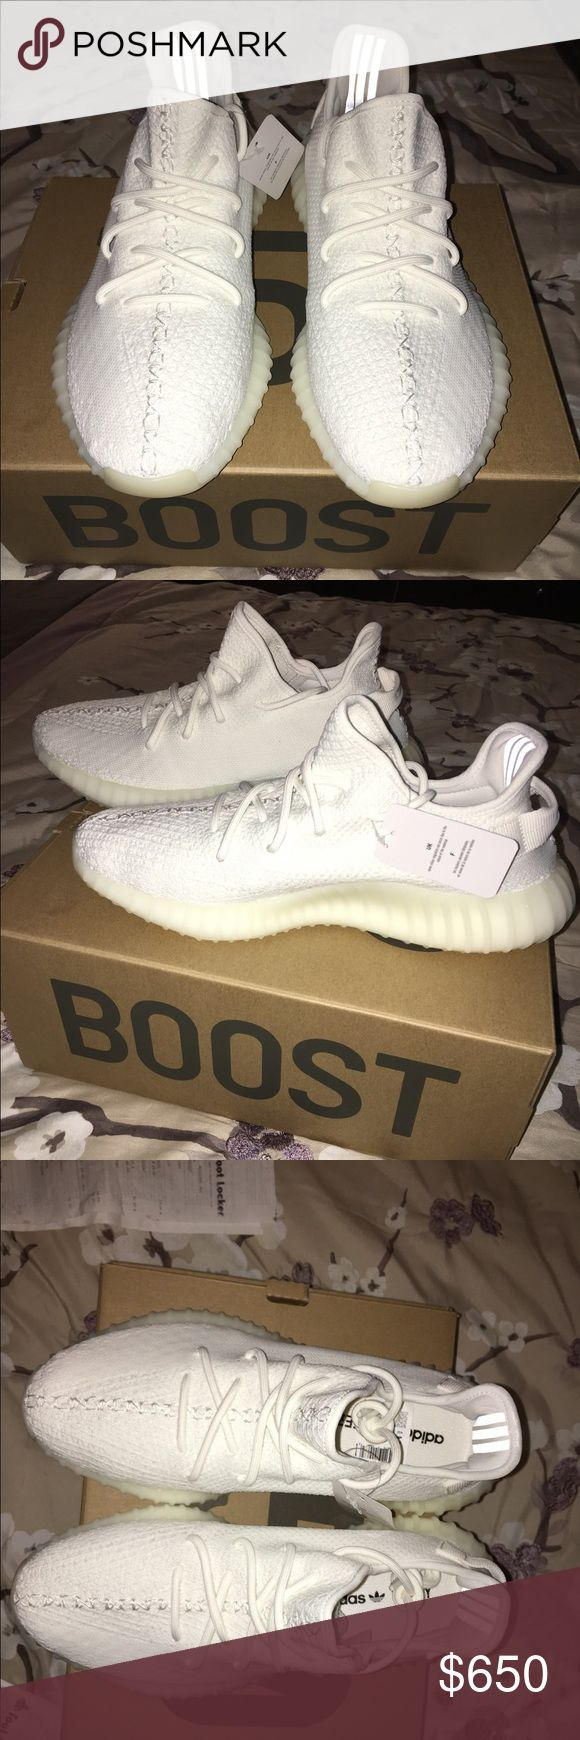 Men's white Yeezys by Kanye west Authentic Yeezys by Kanye west men's never worn brand new in box with proof of purchase from footlocker in NYC, all sold out every where. Please no low ball offers Yeezy Shoes Sneakers